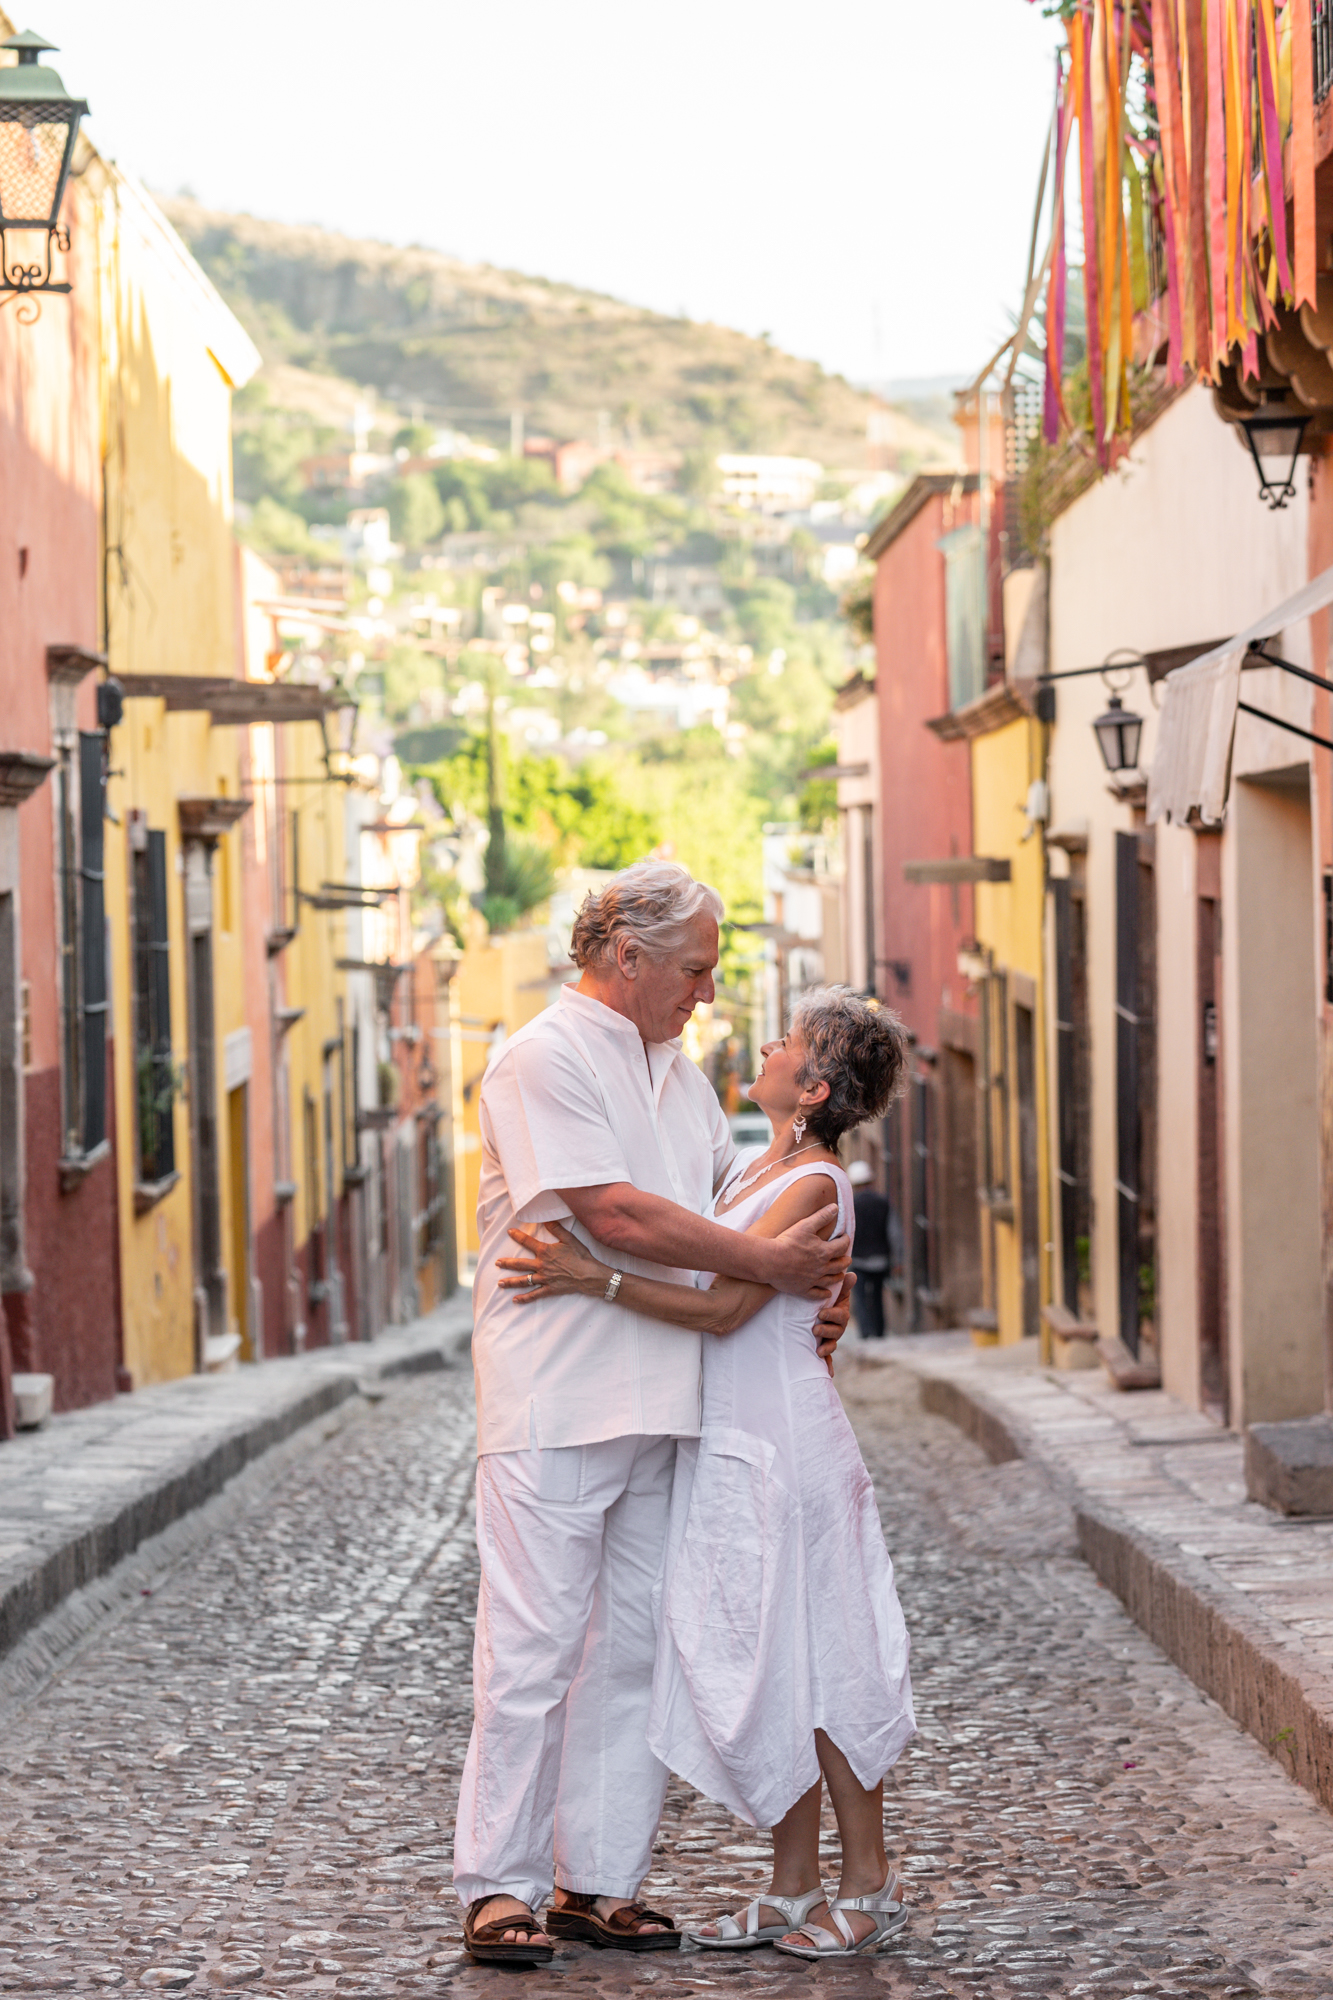 Photoshoot session in San Miguel de Allende with Suzanne and Leo-43.jpg